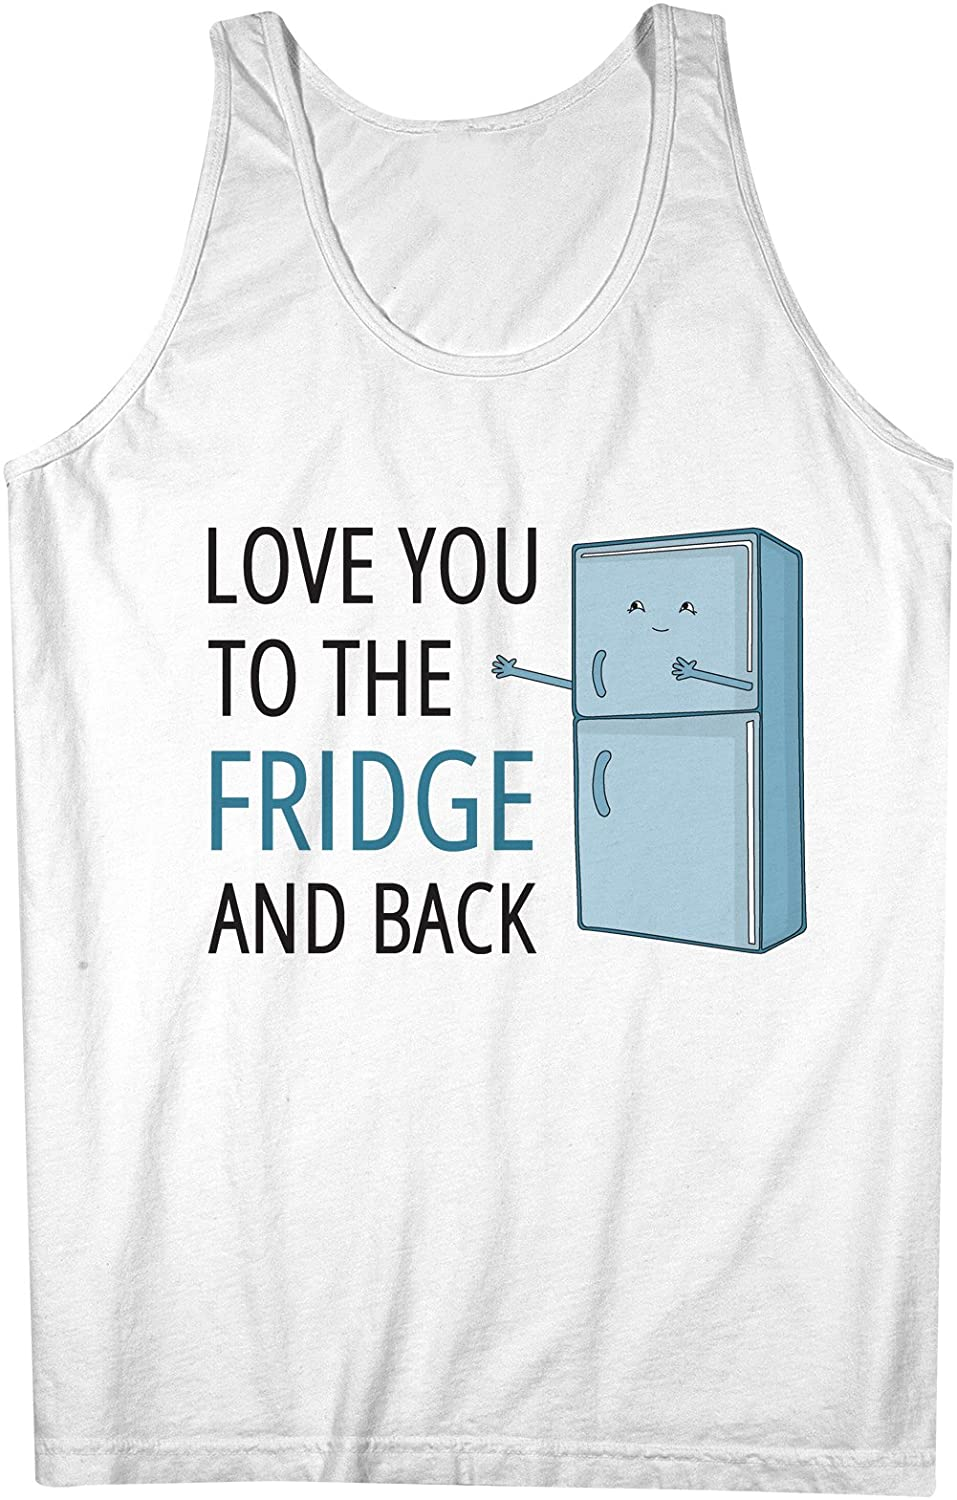 Love You To The Fridge And Back おかしいです 皮肉な Food 男性用 Tank Top Sleeveless Shirt